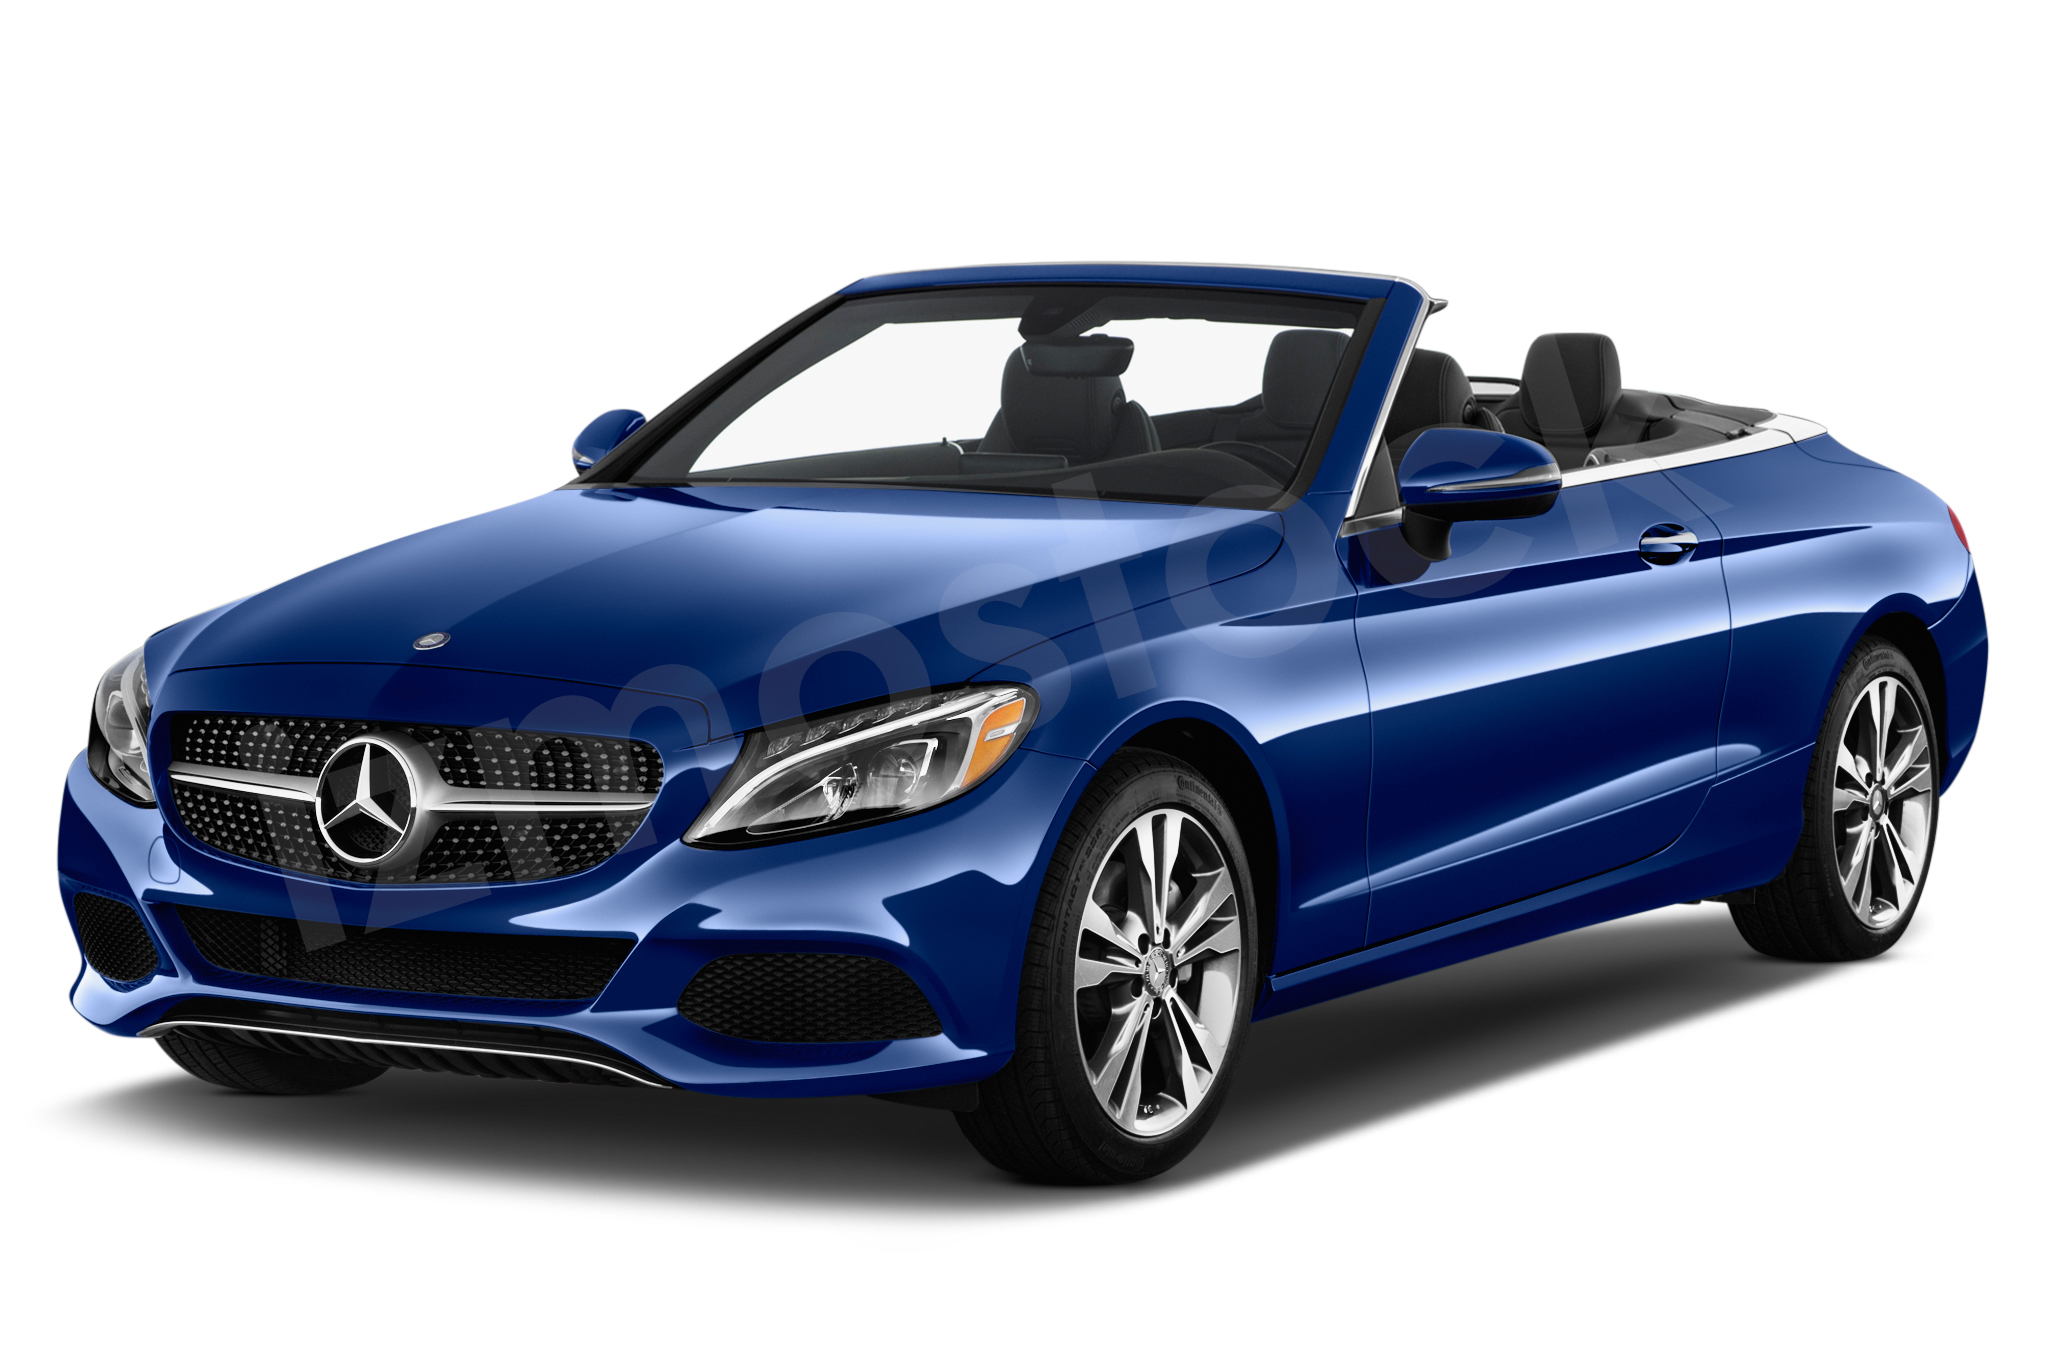 2017 mercedes benz c300 cabriolet review izmostock for Mercedes benz cabriolet 2017